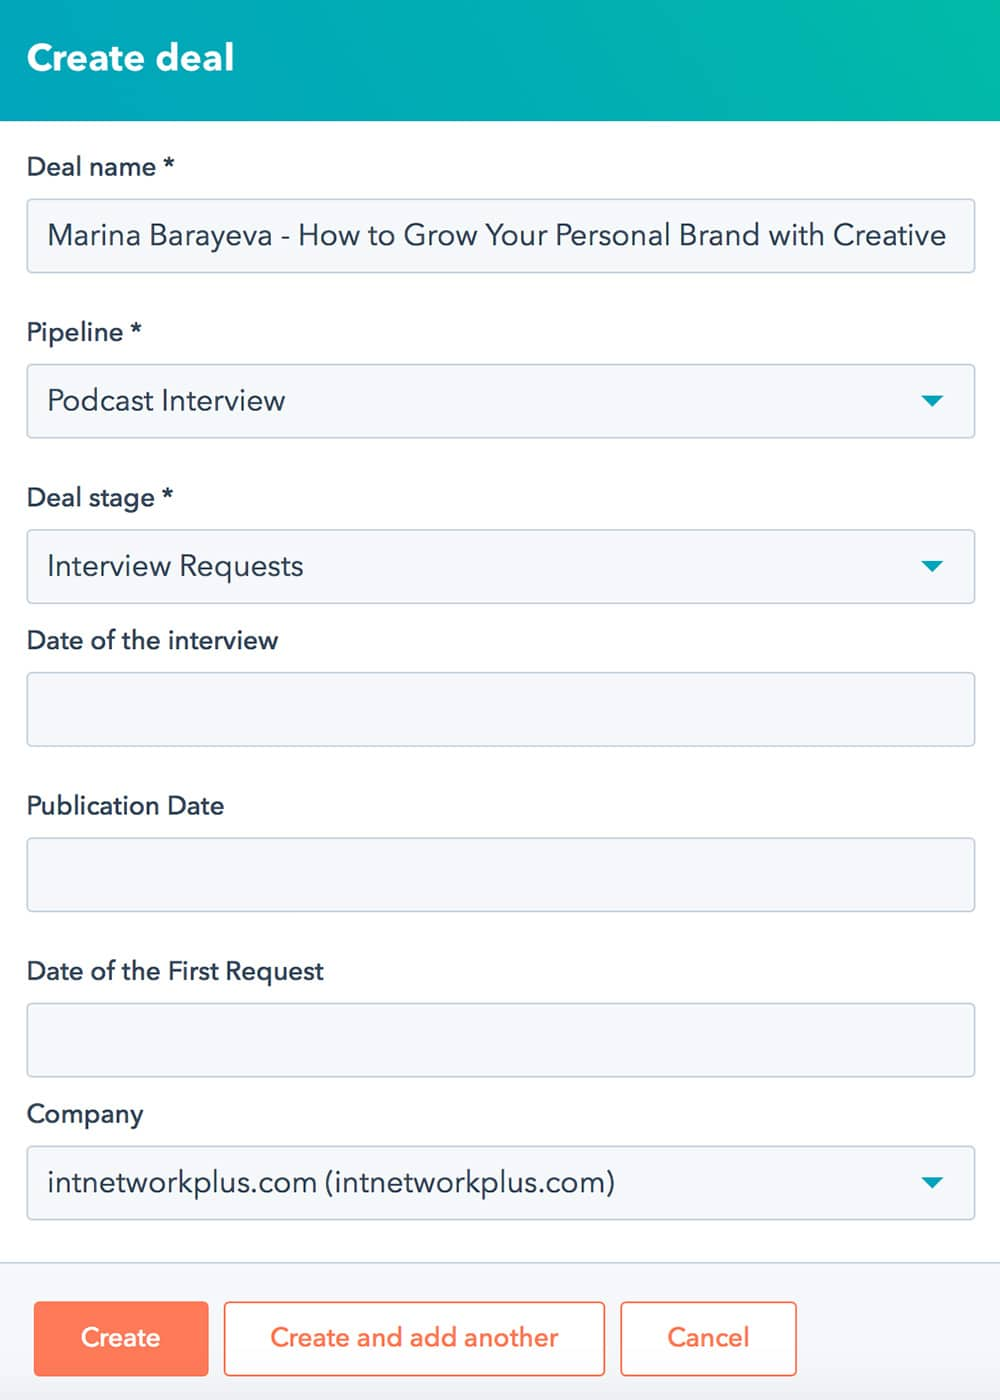 How to add a new podcast interview deal to a podcast guest